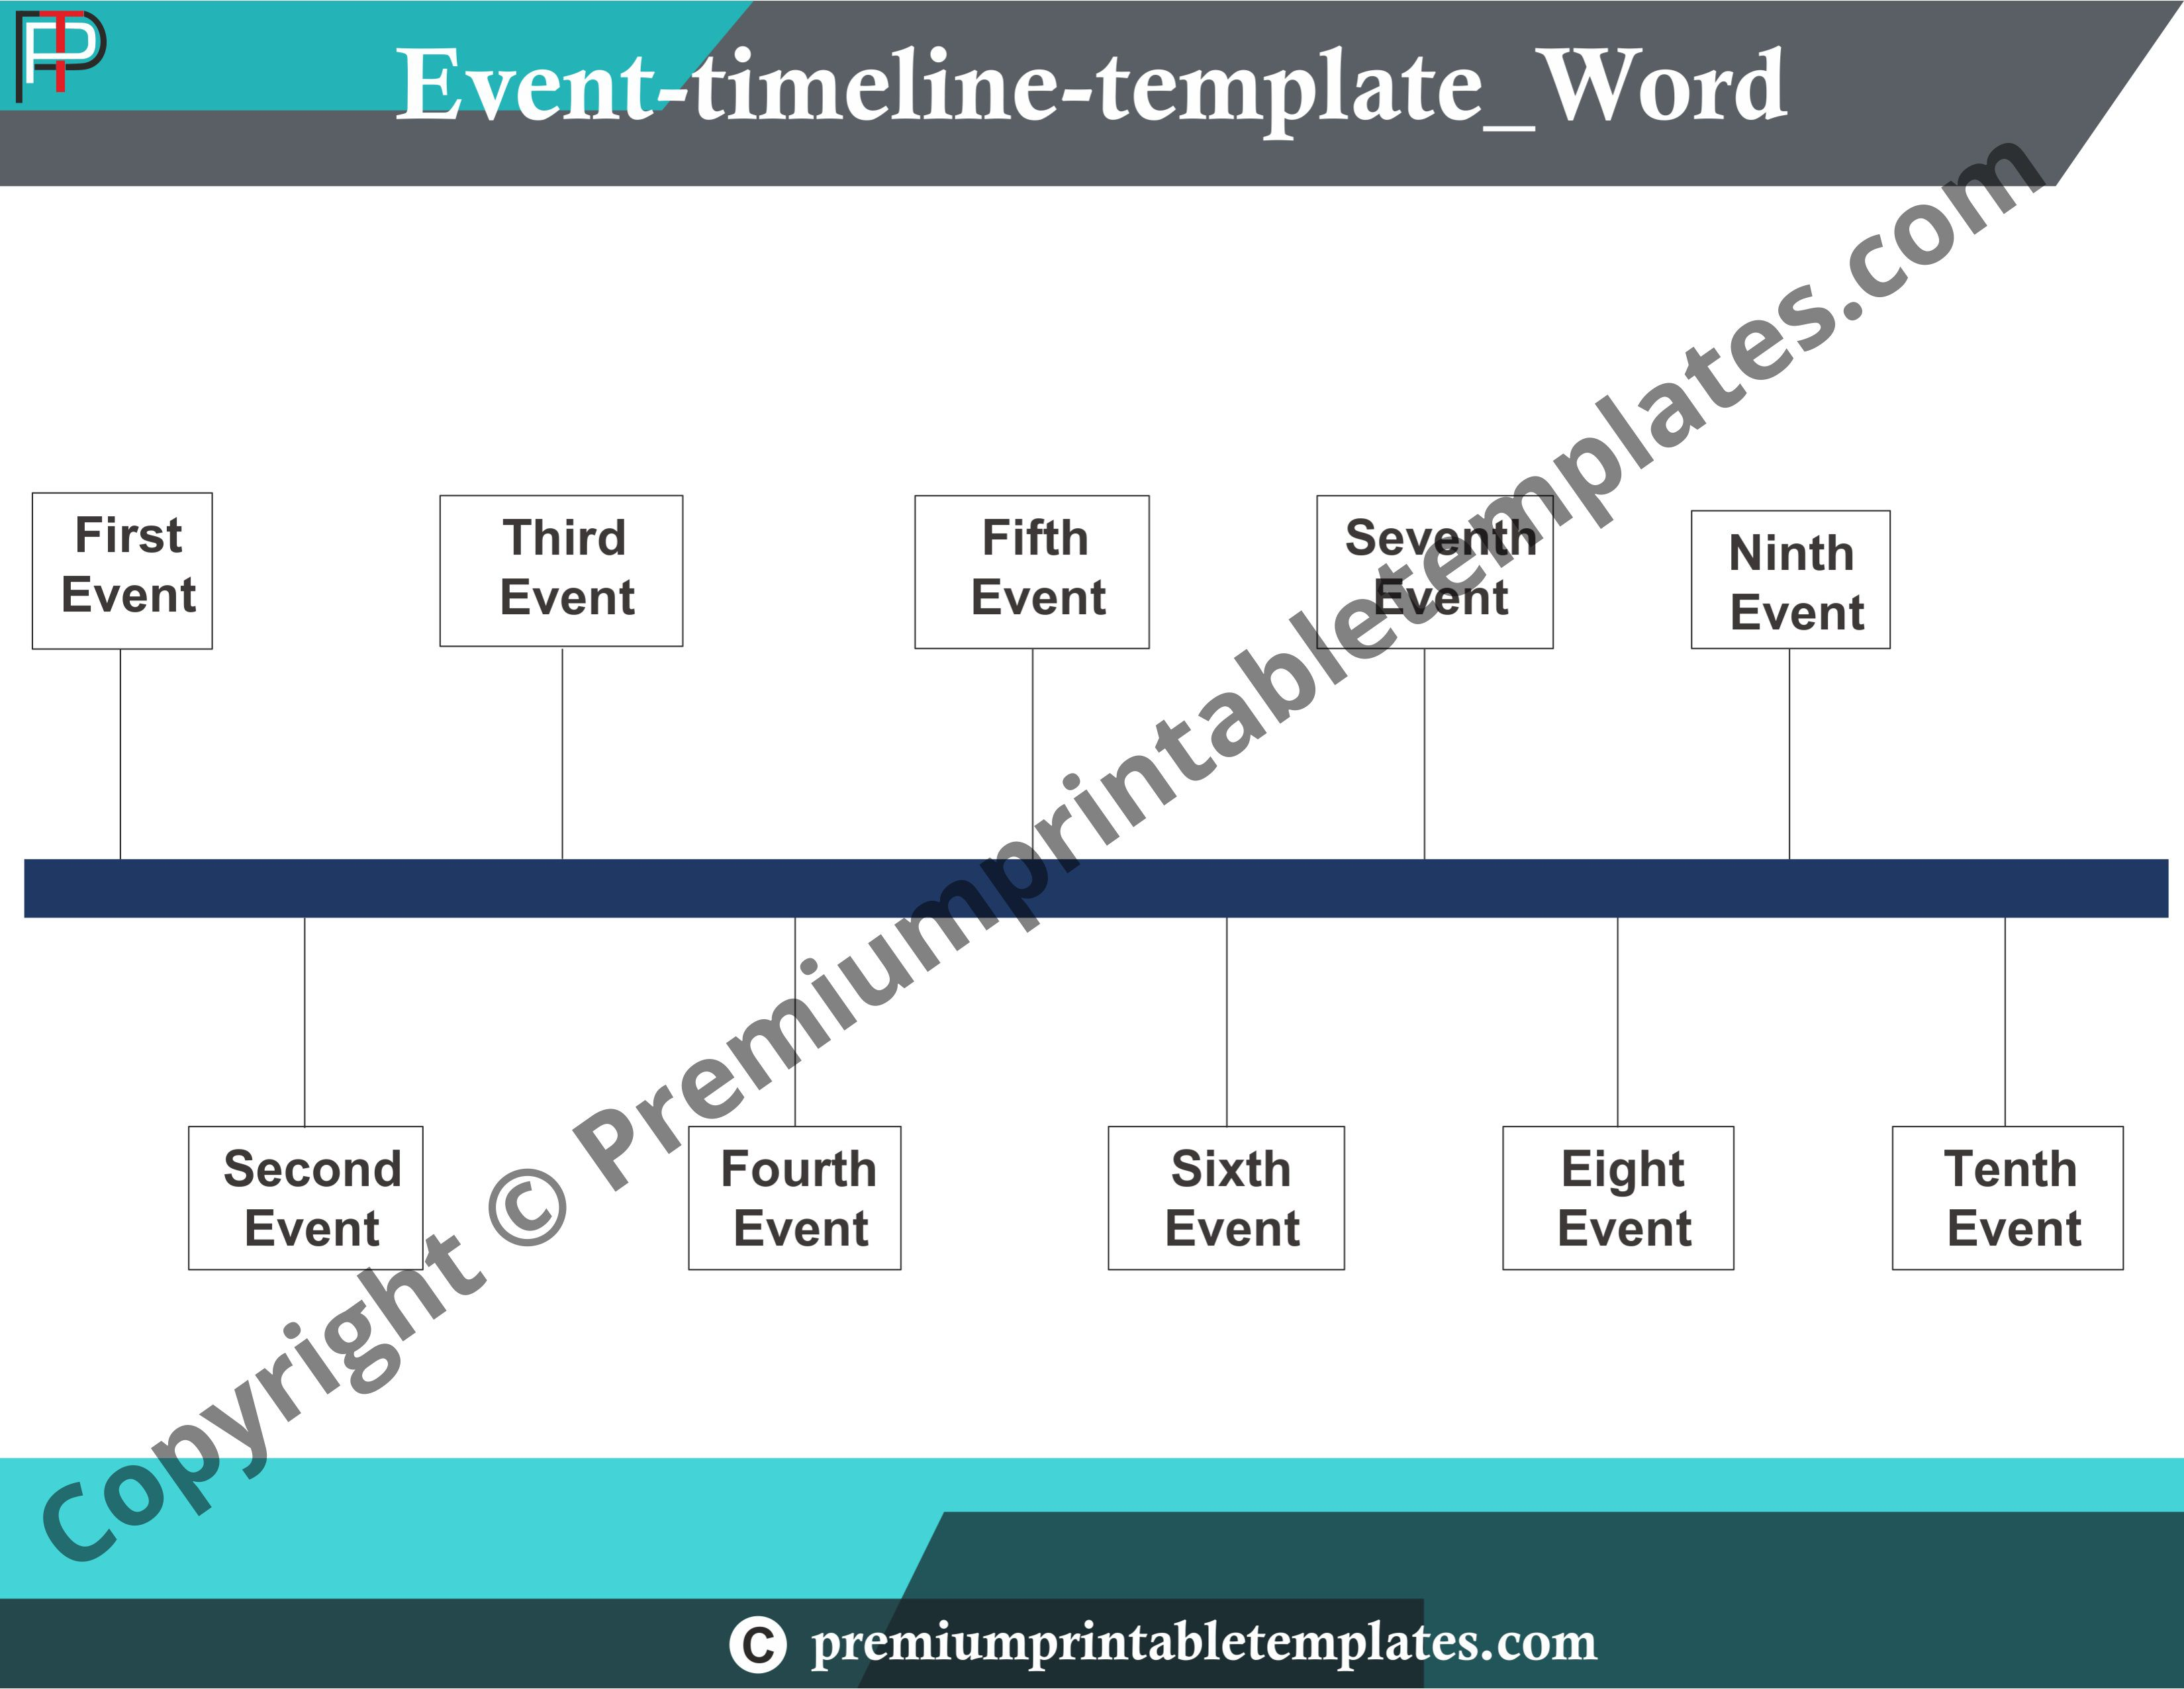 004 Stunning Timeline Template For Word Picture  History DownloadableFull